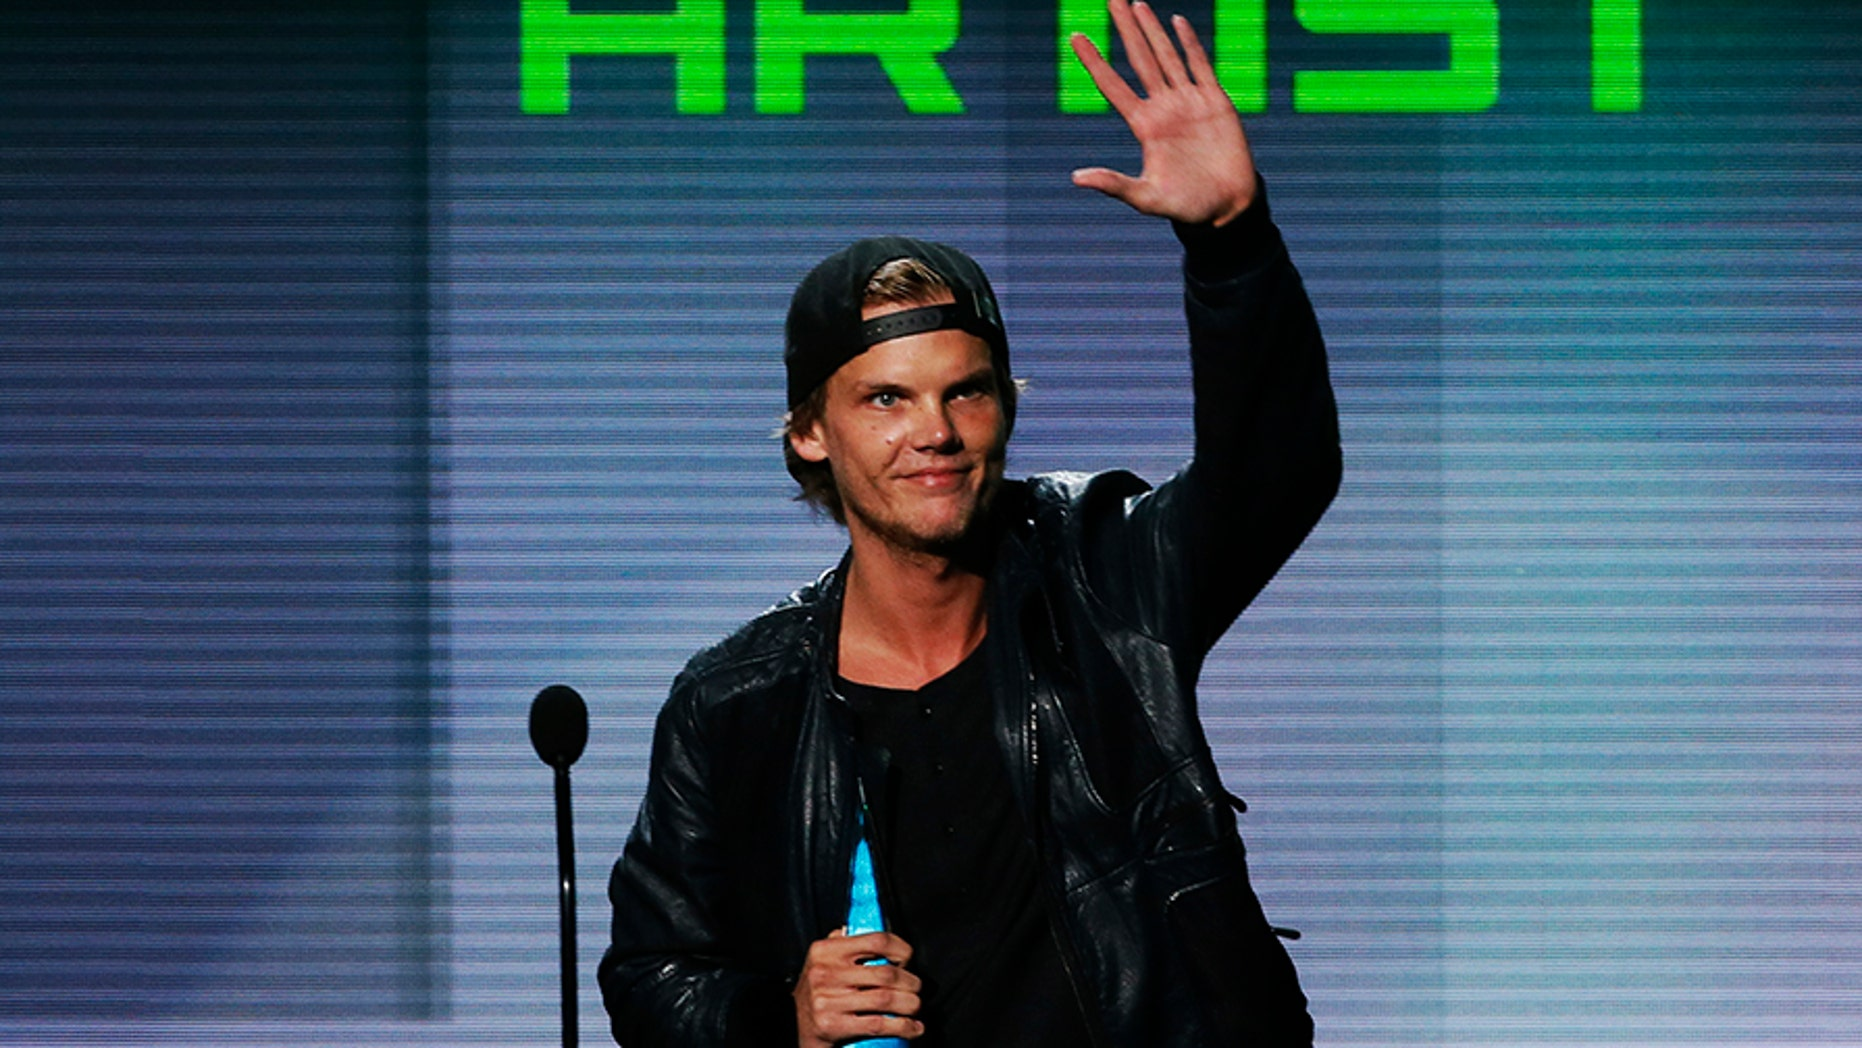 Avicii stopped touring in 2016 but continued to produce music.